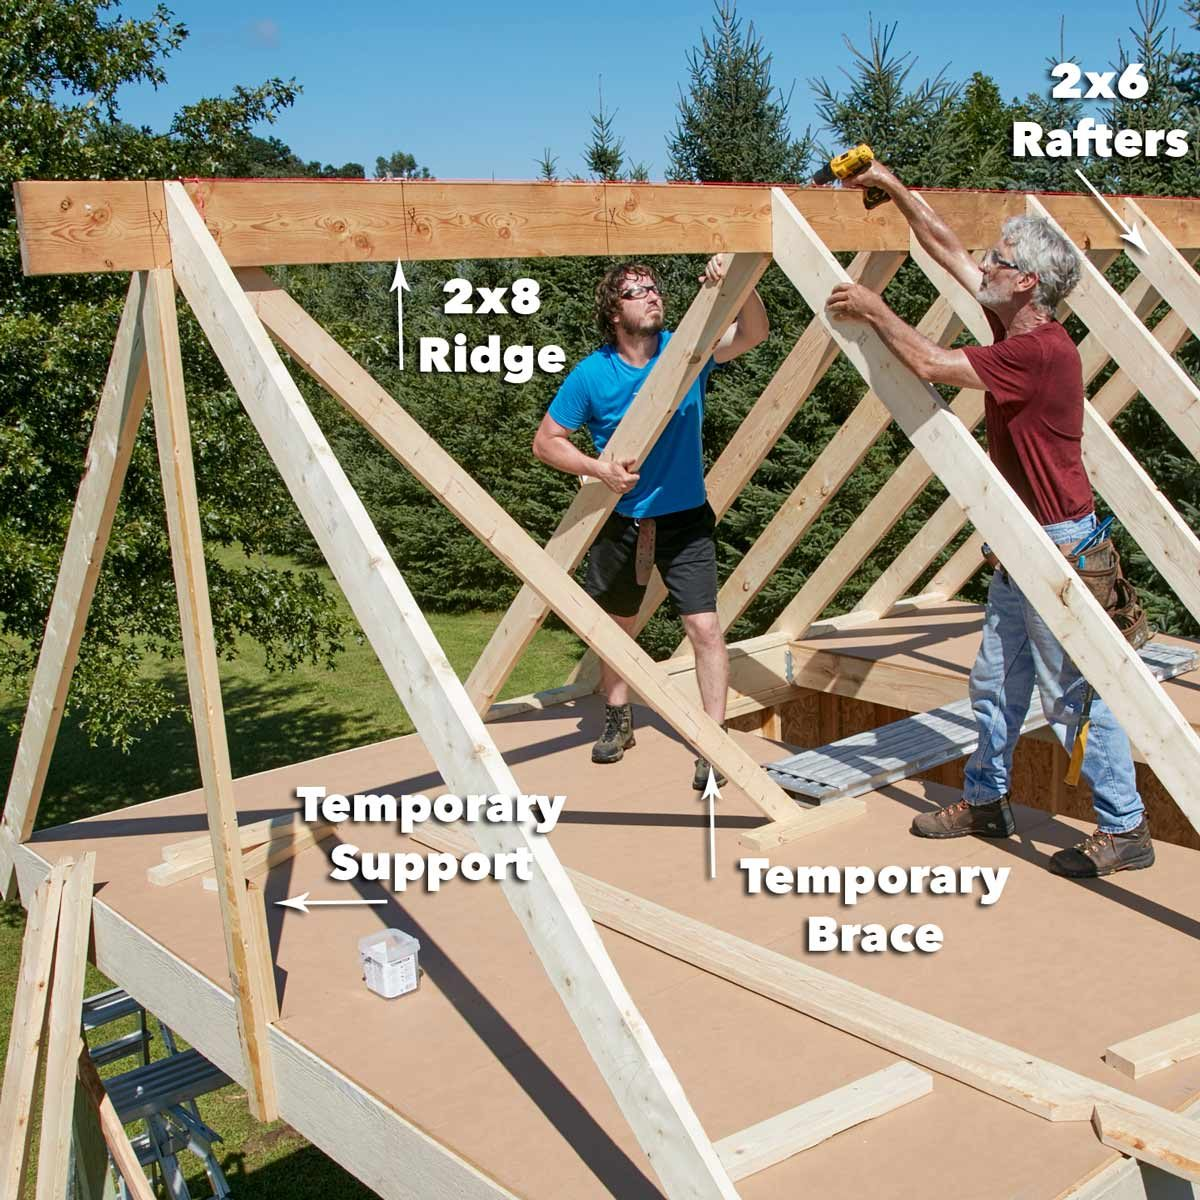 FH17JAU_580_50_067 pub shed frame the roof